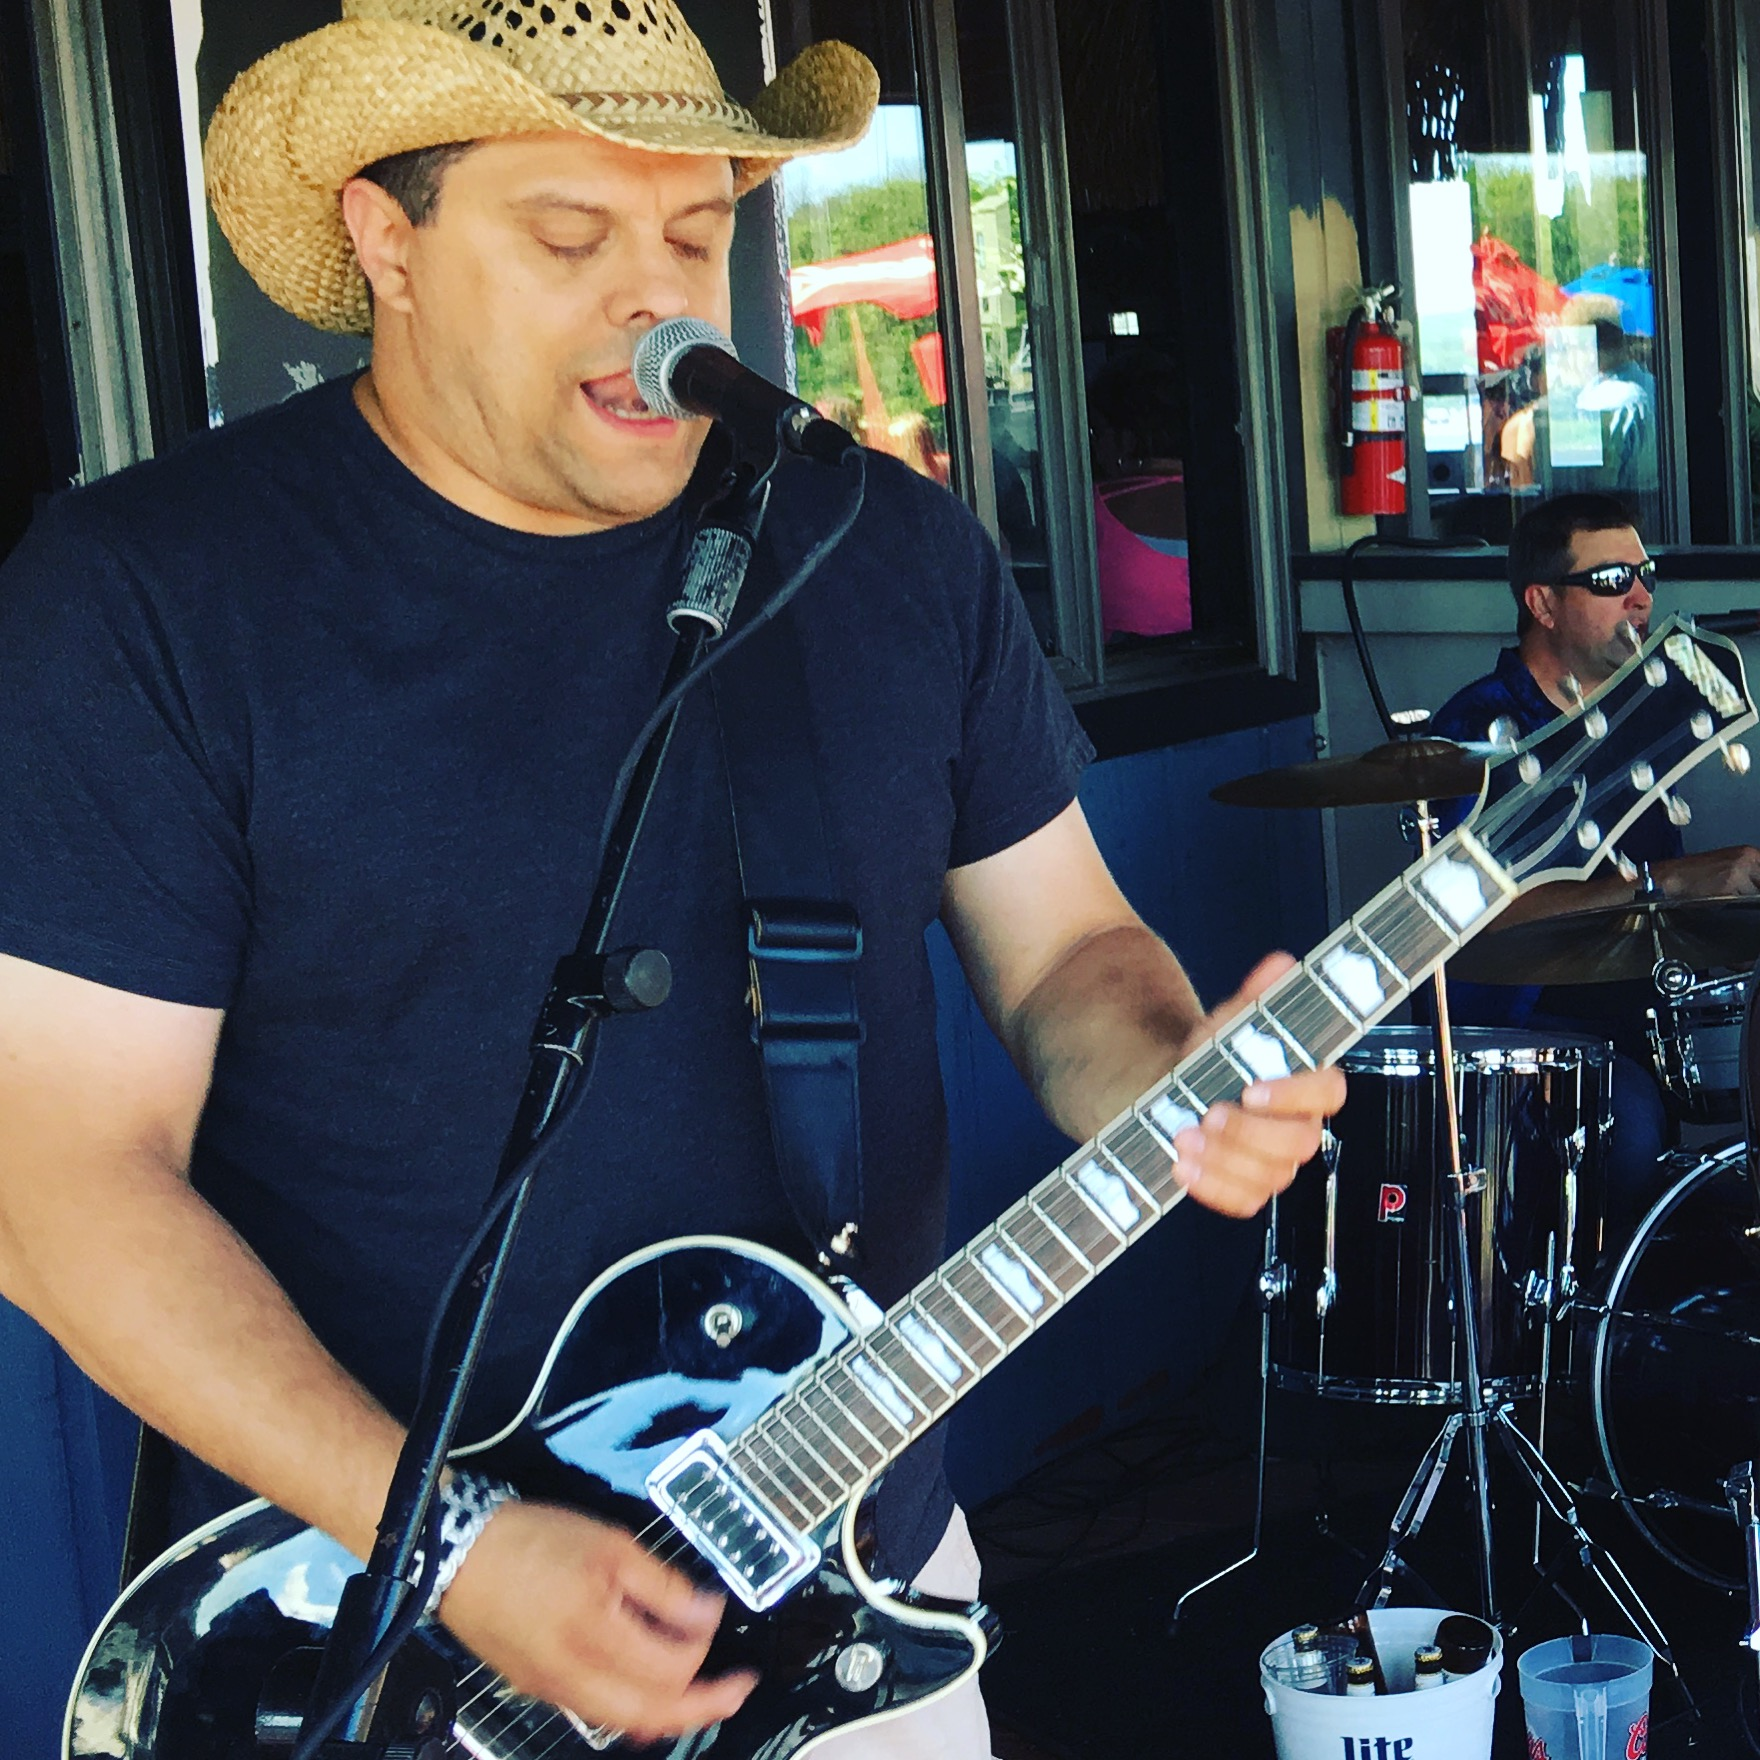 Neal Rudnik of CK and The Gray performs at Horns & Halos Saloon in Channahon, IL